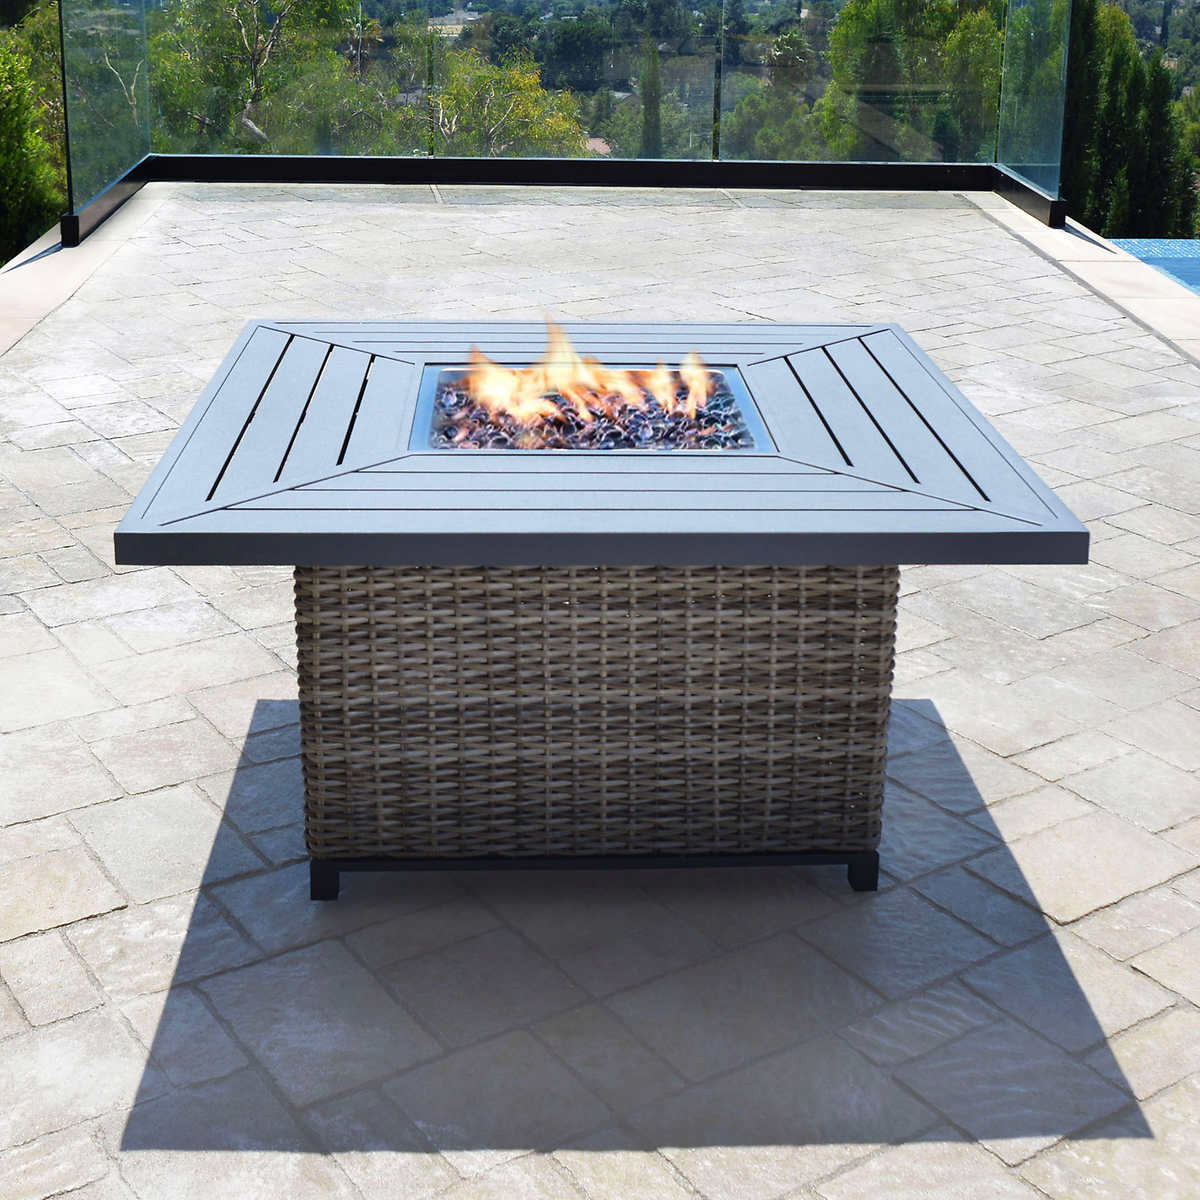 Corbin Fire Table